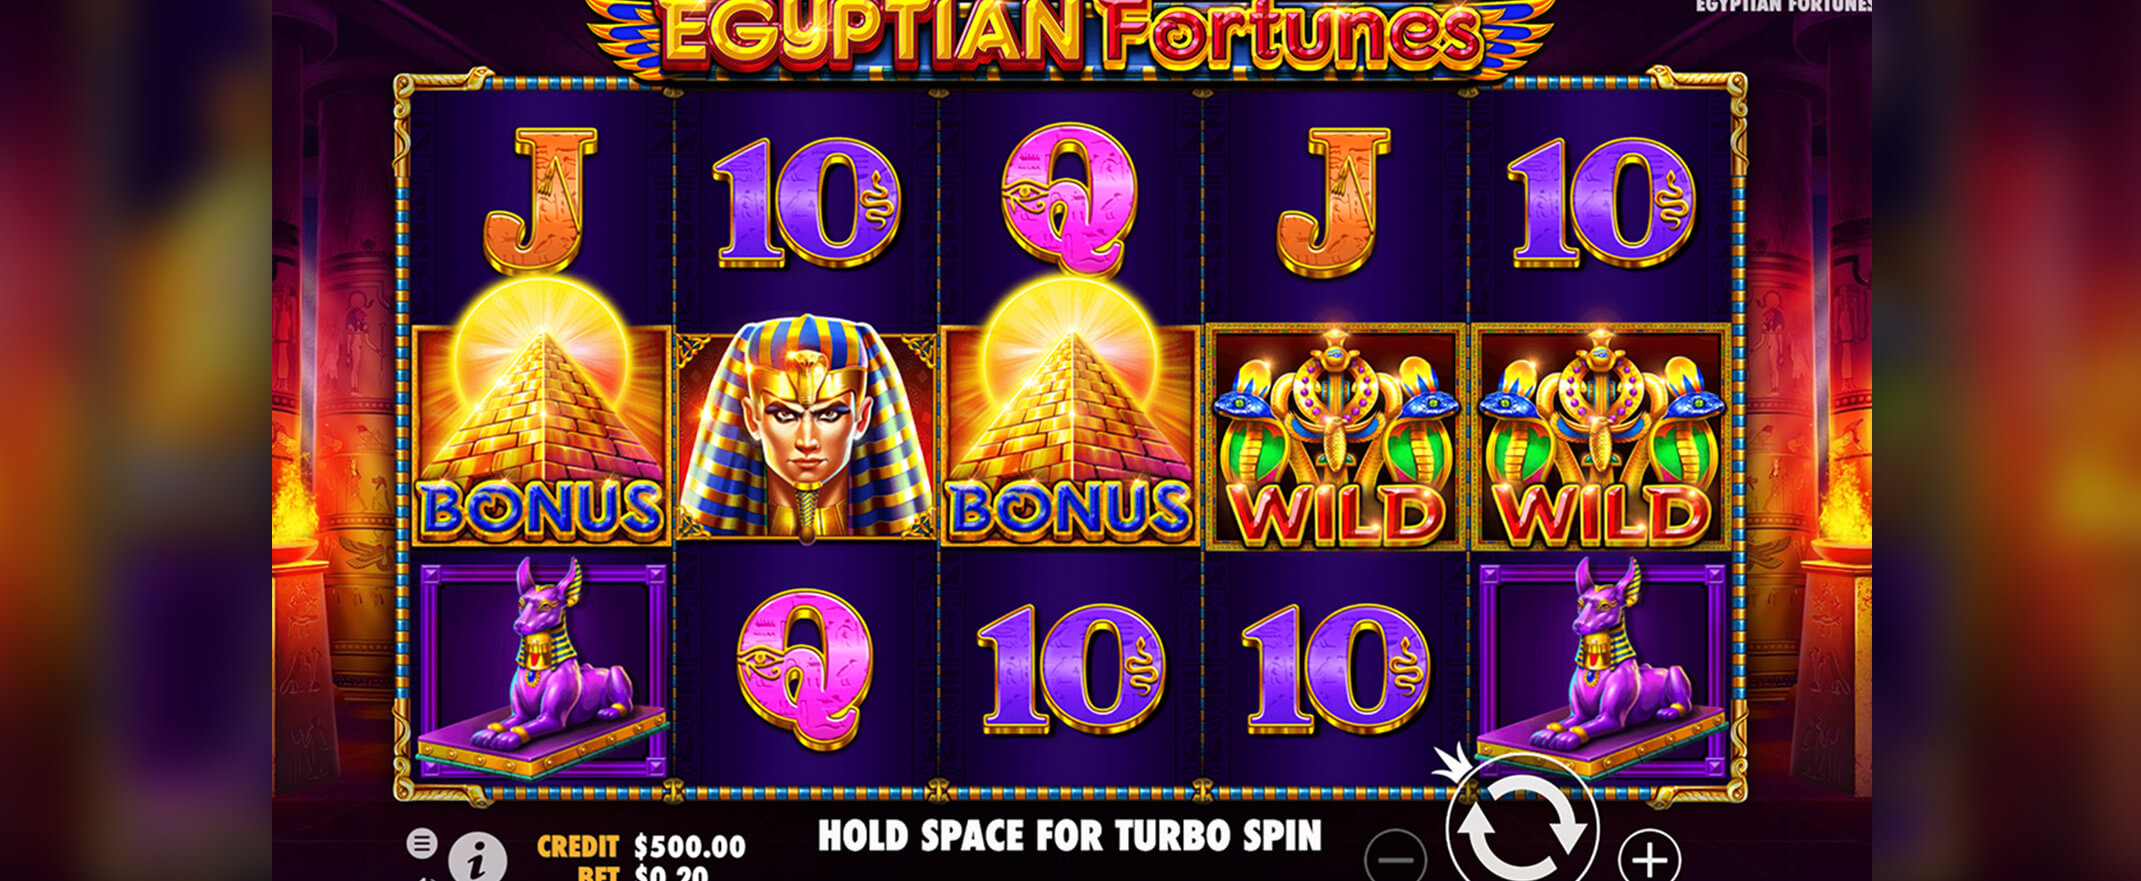 Egyptian_Fortunes